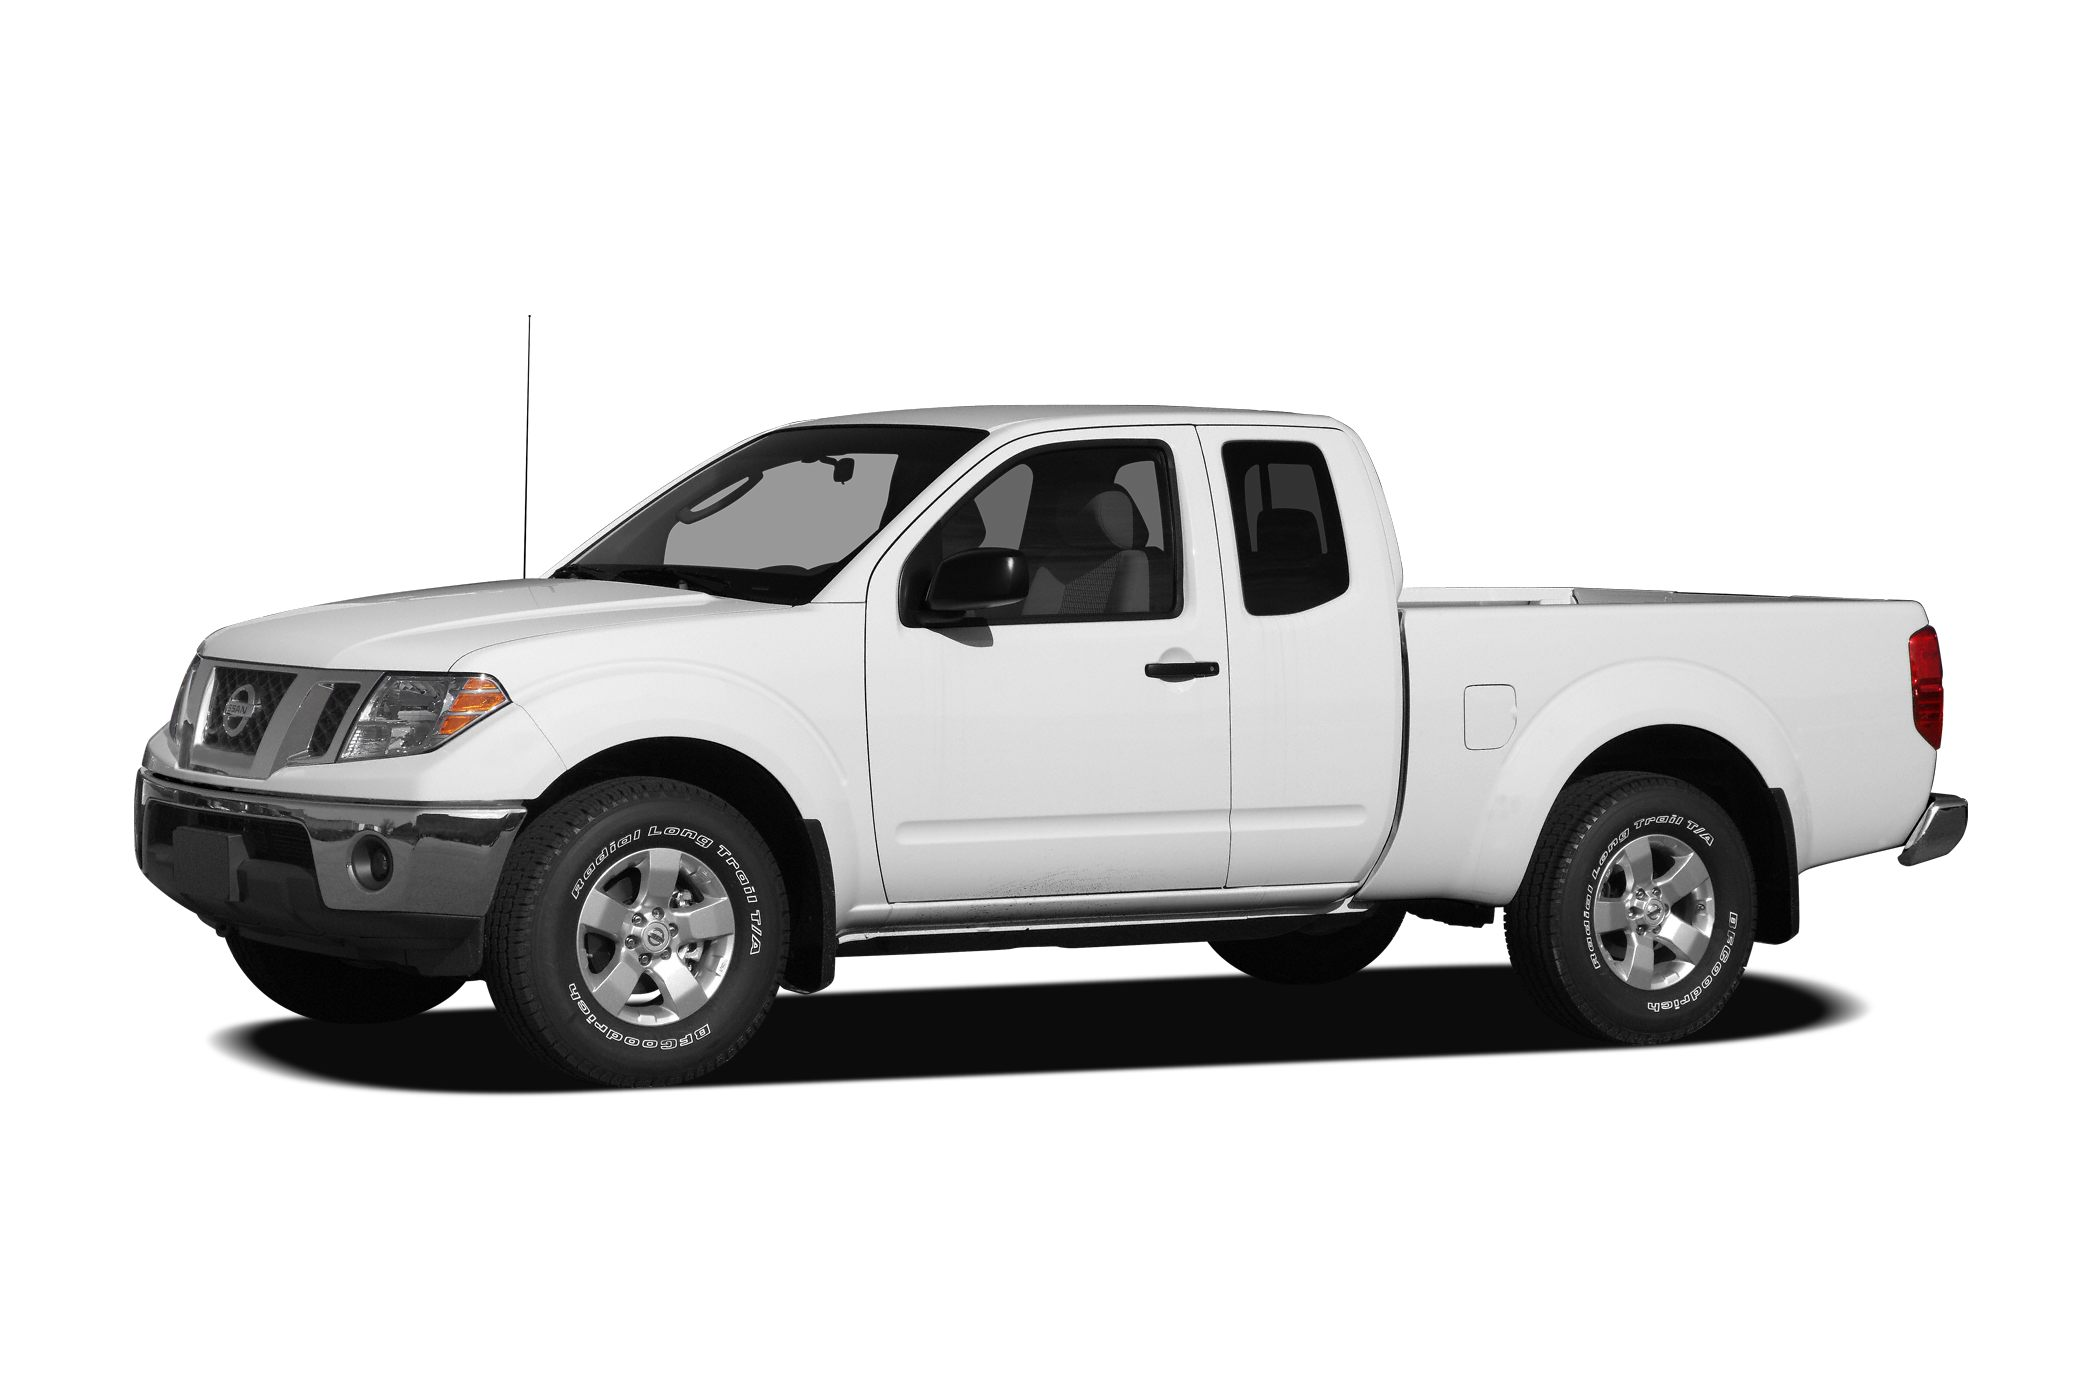 CAC10NIT121B0101 - 2011 Nissan Frontier King Cab Sv 4 Cylinder